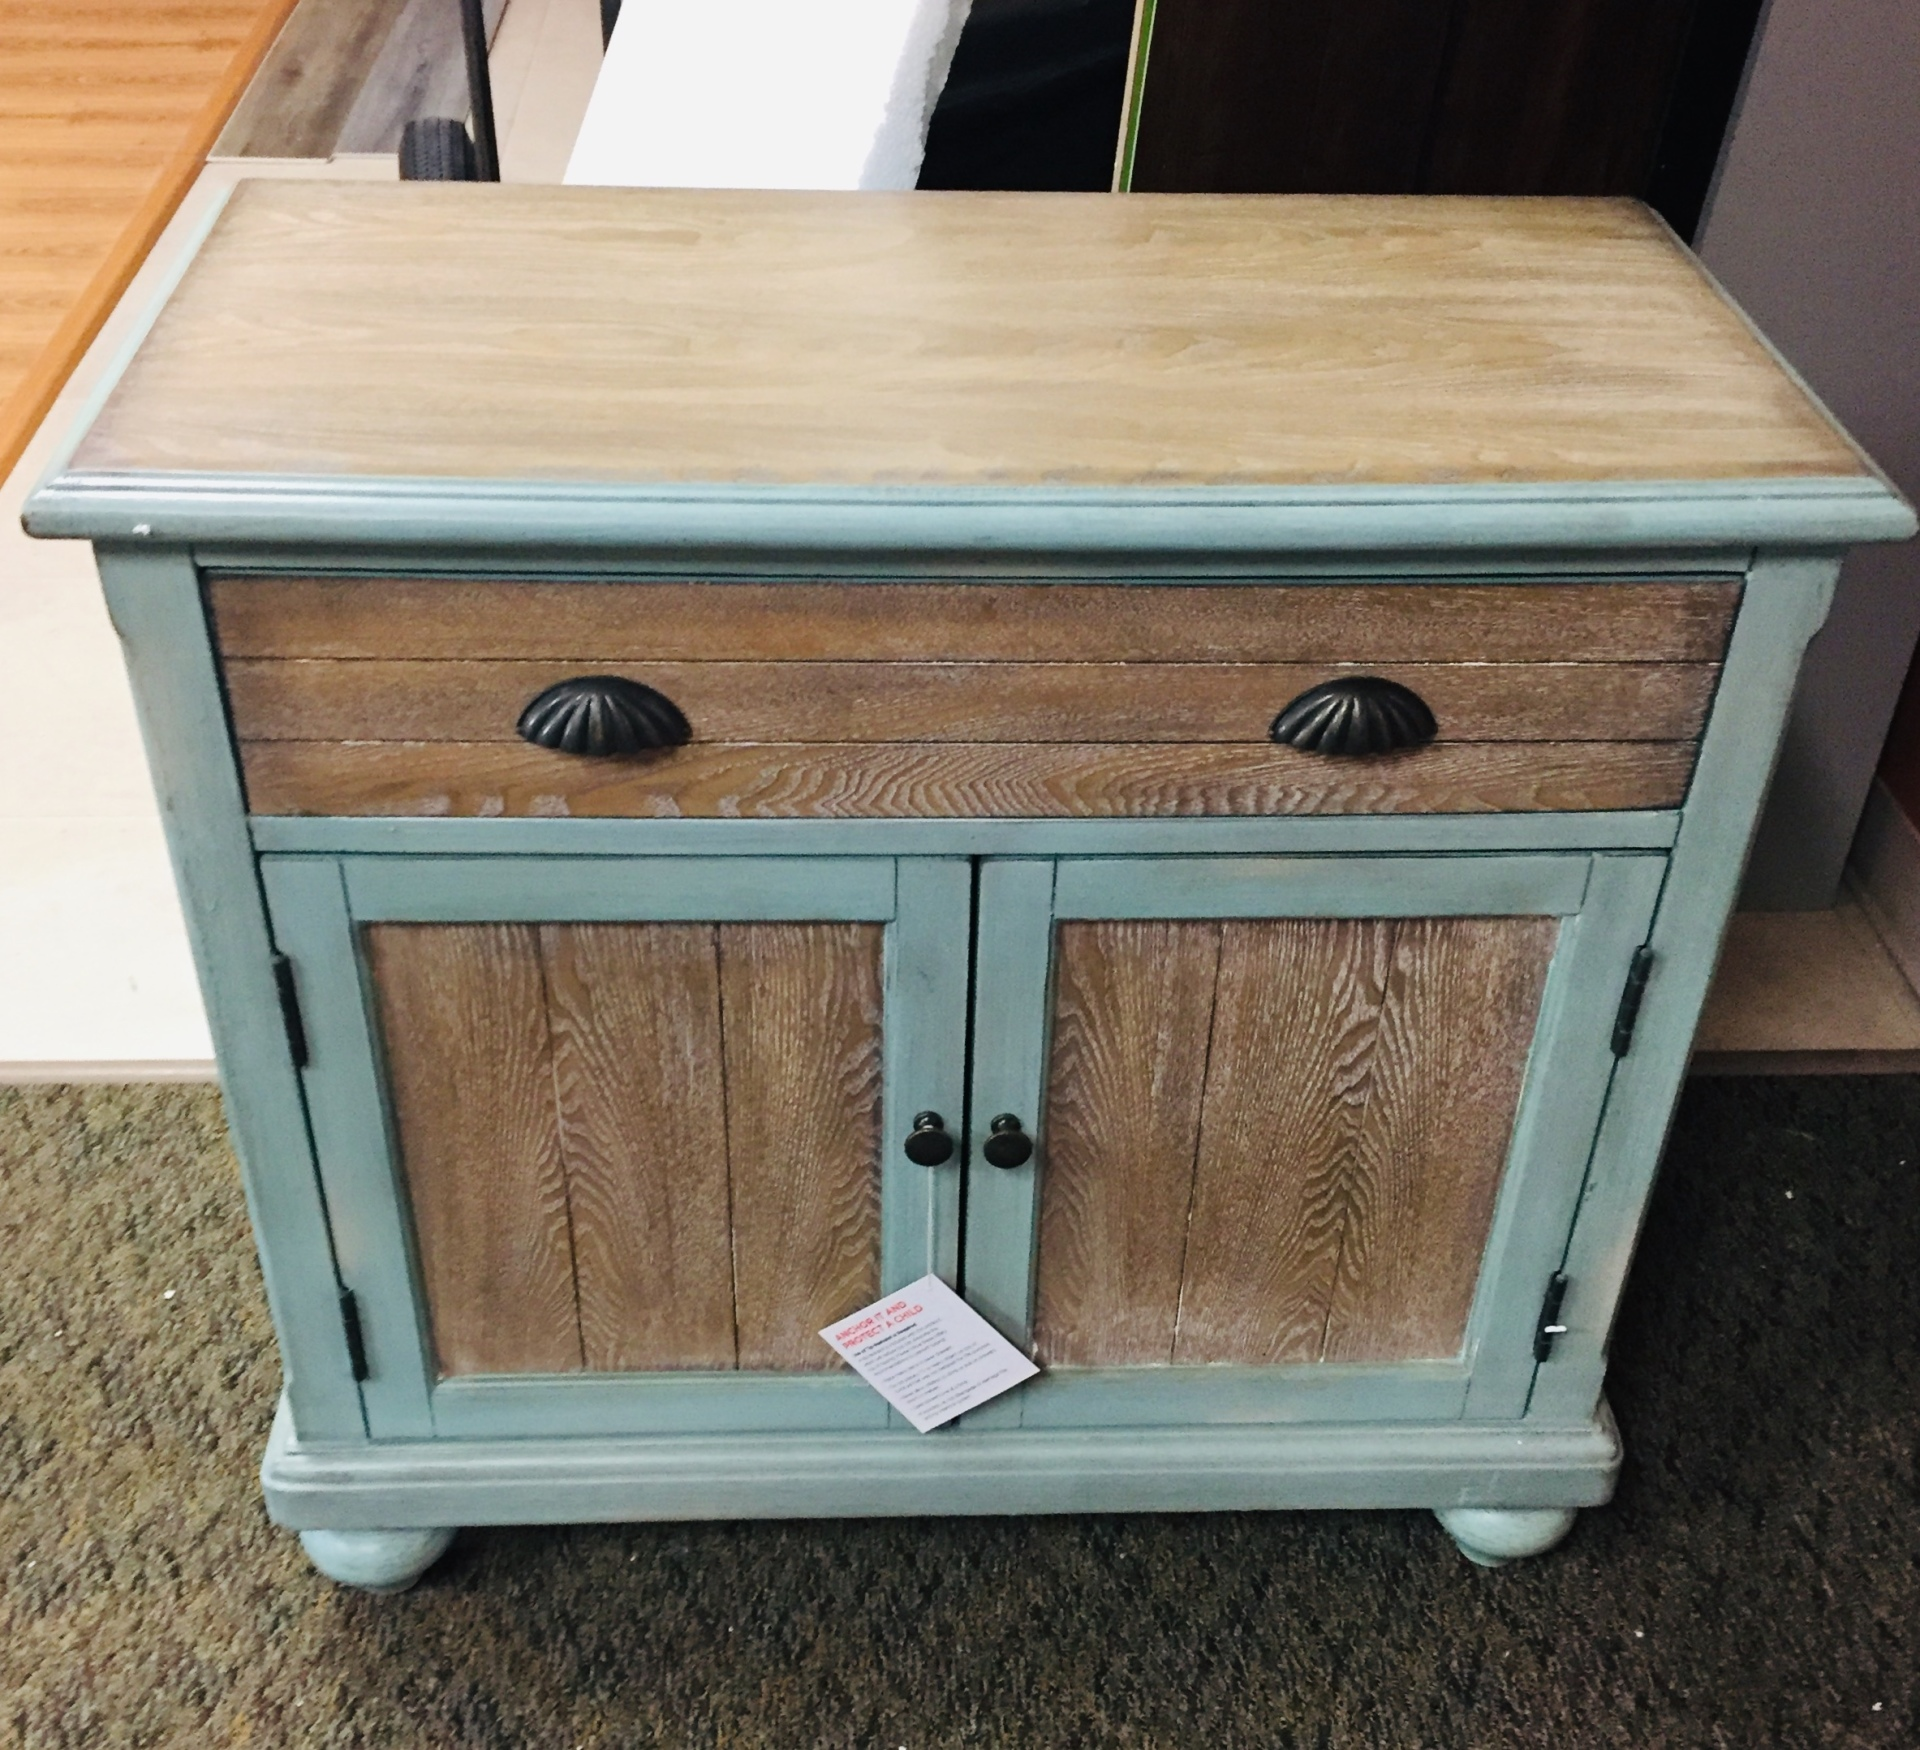 COAST TO COAST 1 DRAWER 2 DOOR CABINET